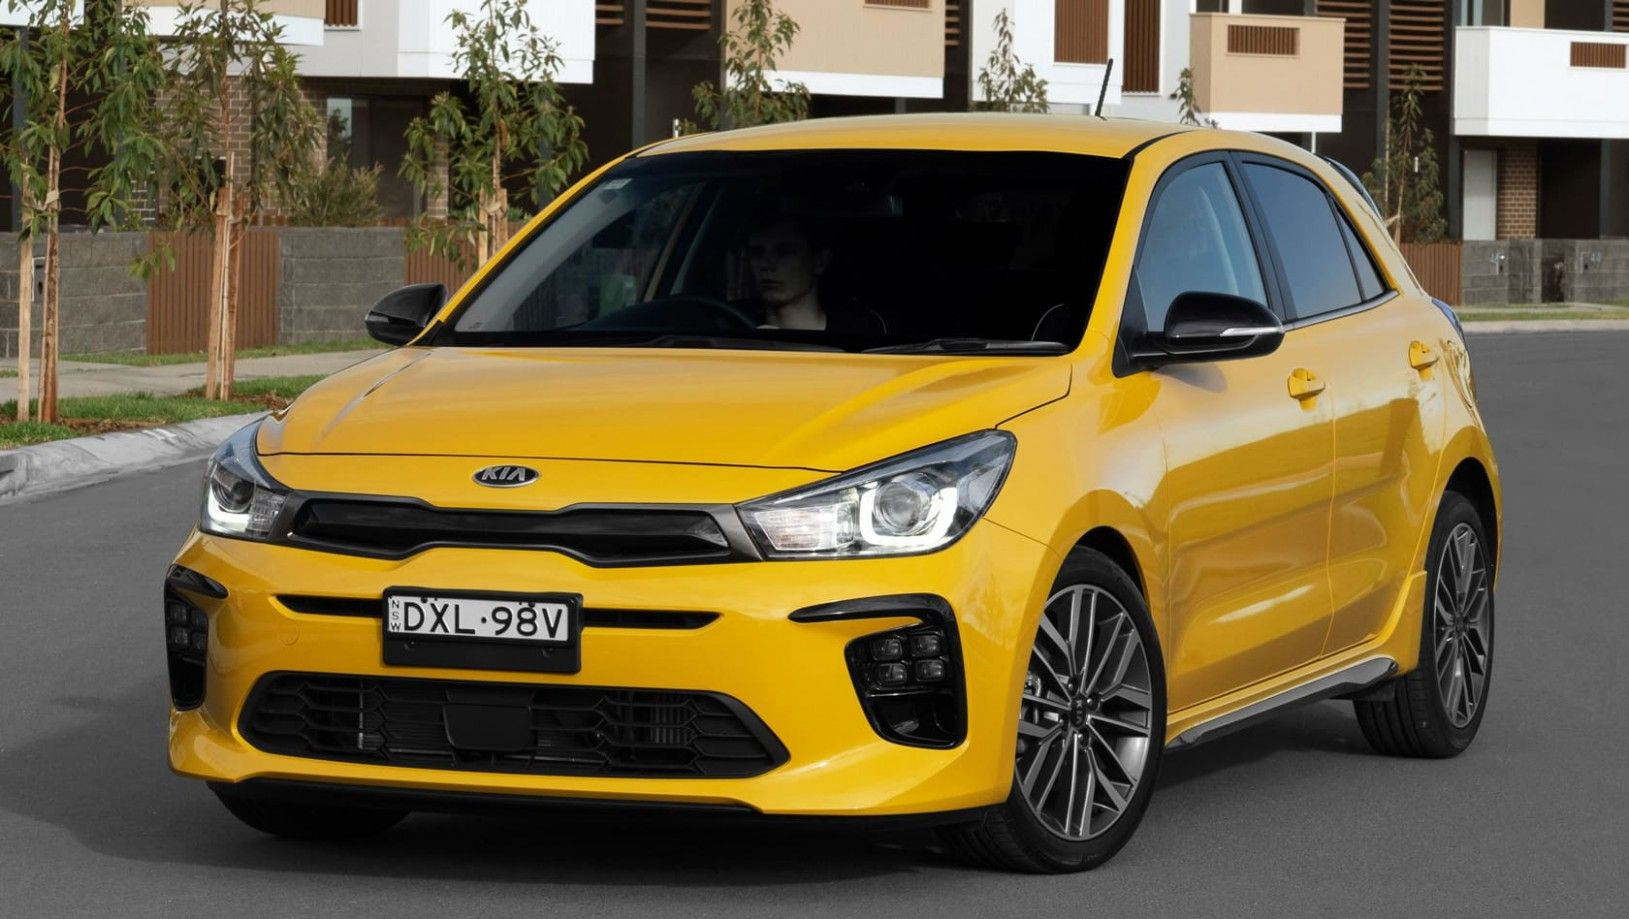 Ten 2020 All Kia Rio Design Rituals You Should Know In 2016 Ten